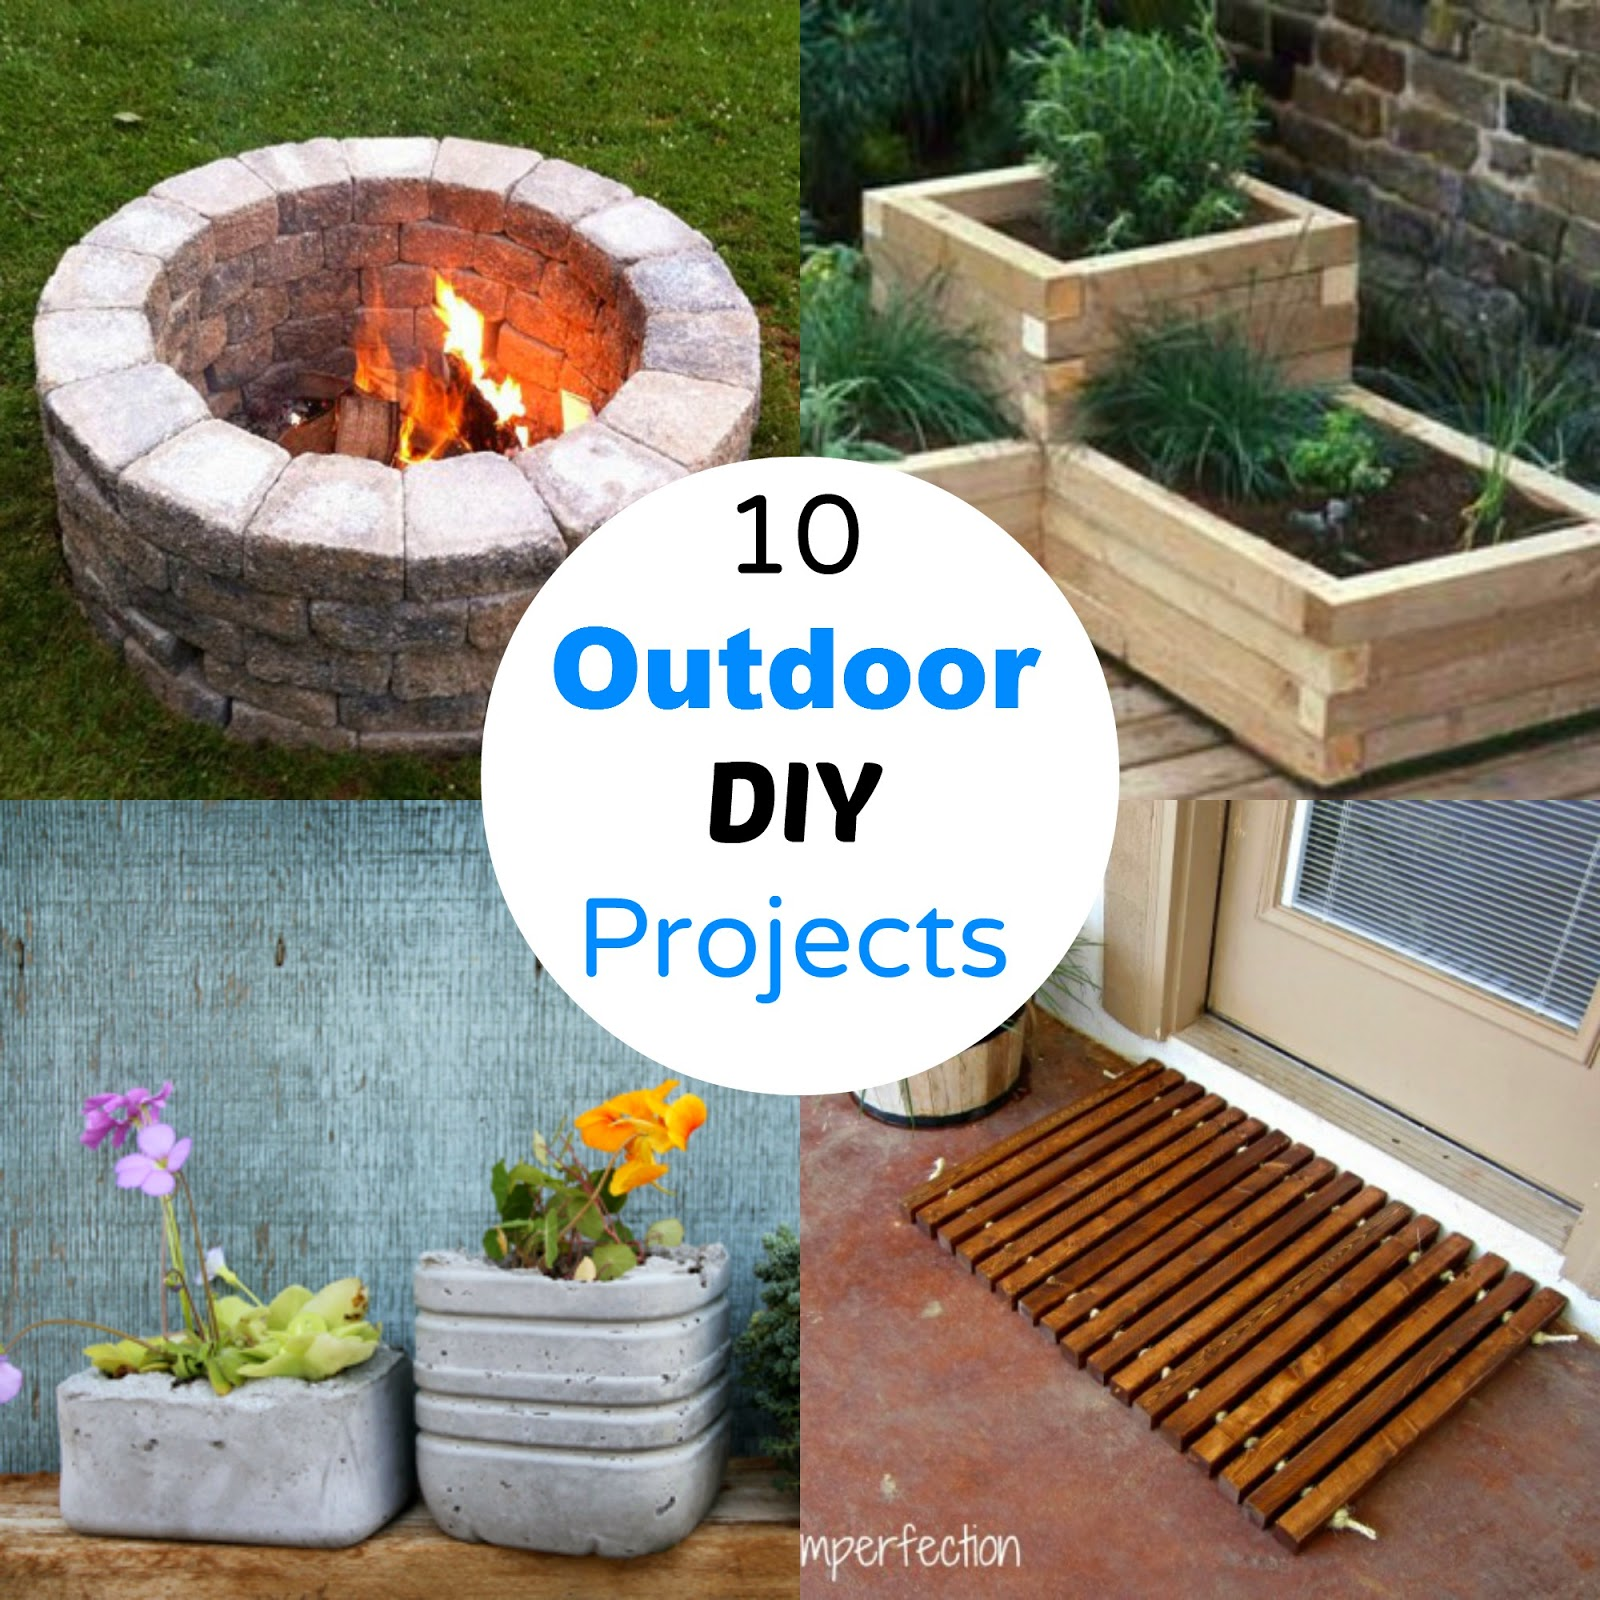 Decorating Cents Outdoor DIY Projects - Outdoor diy projects